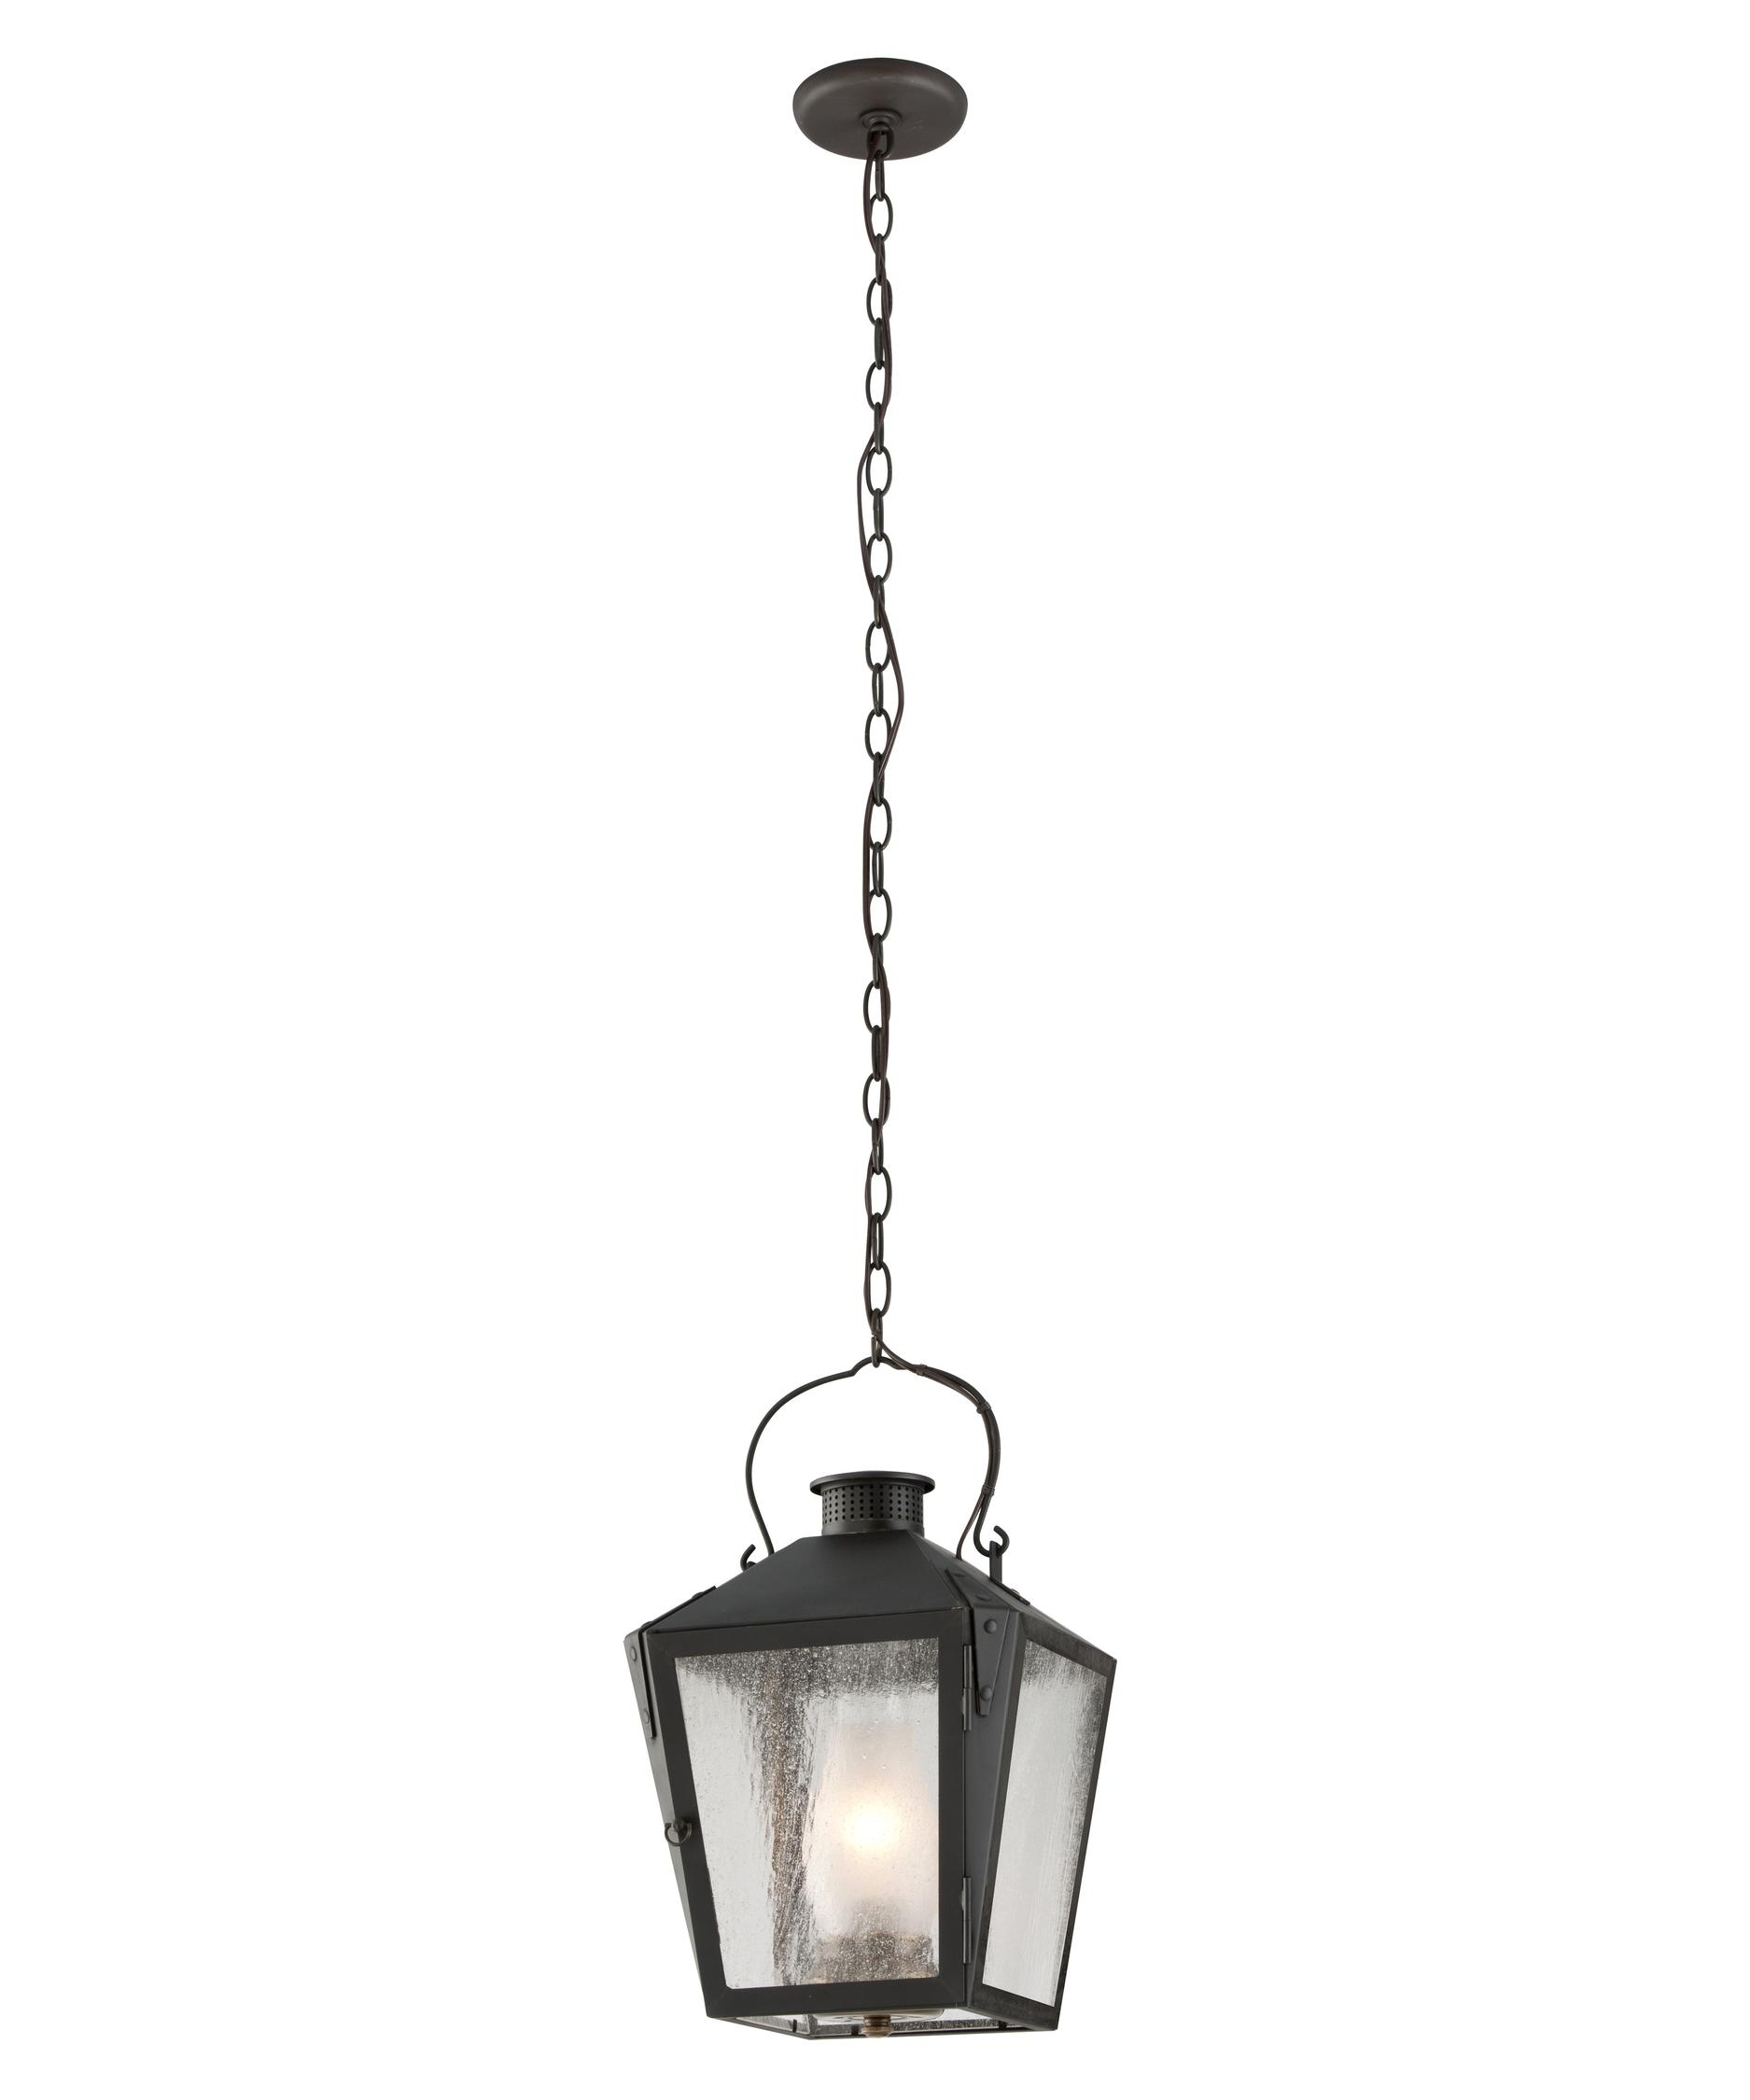 Troy Lighting F3766 Nantucket 11 Inch Wide 1 Light Outdoor Hanging Throughout Most Recently Released Nantucket Outdoor Lanterns (View 13 of 20)